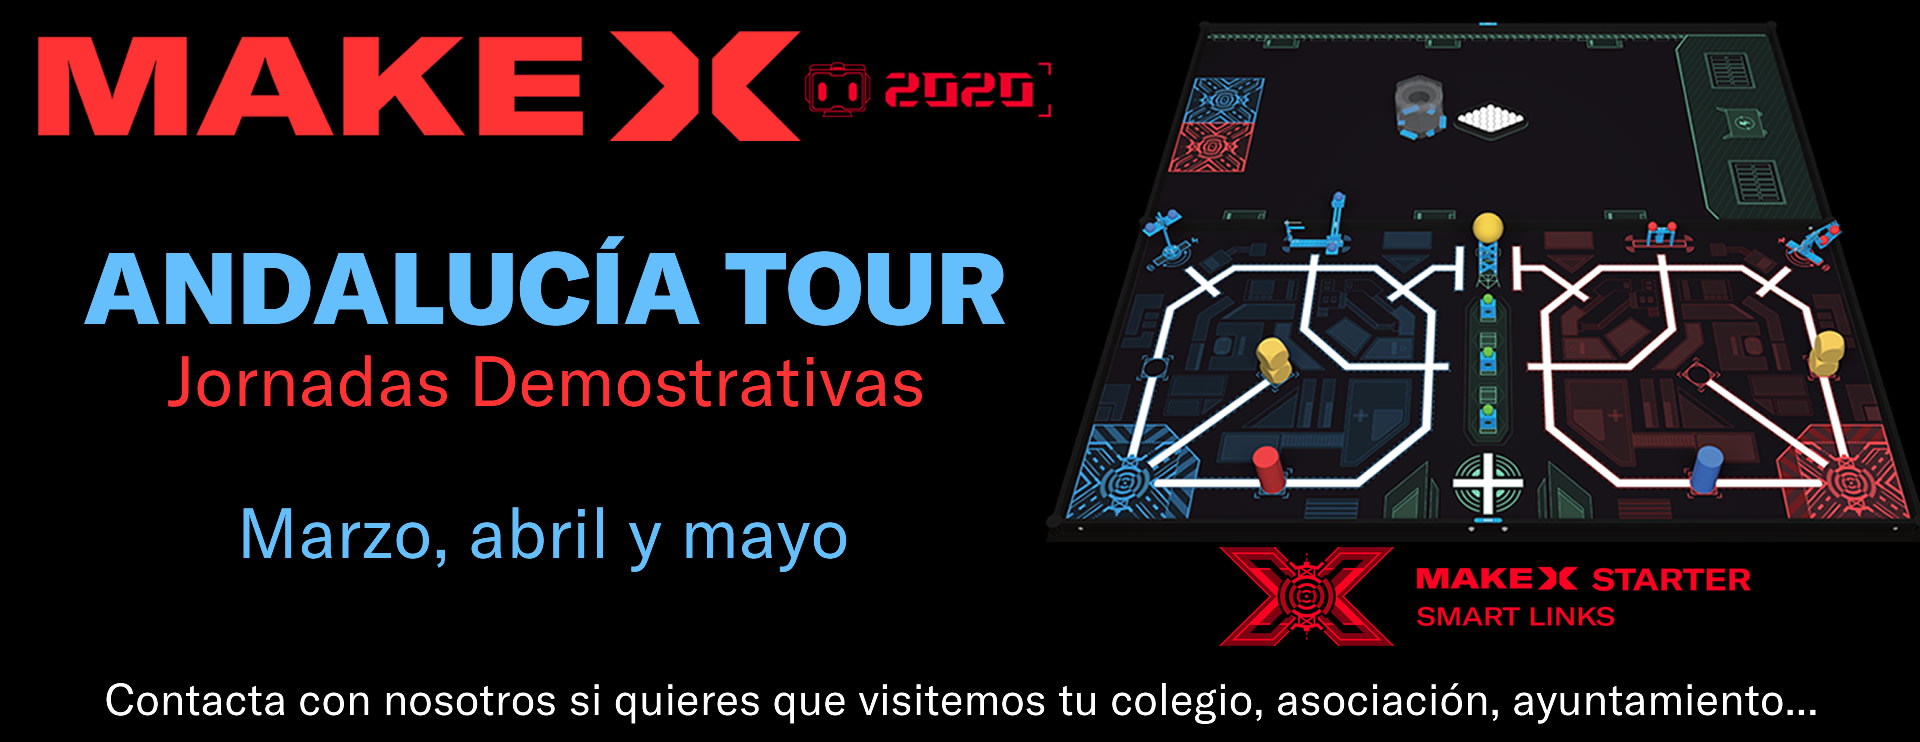 Banner MakeX Andalucia Tour 2020